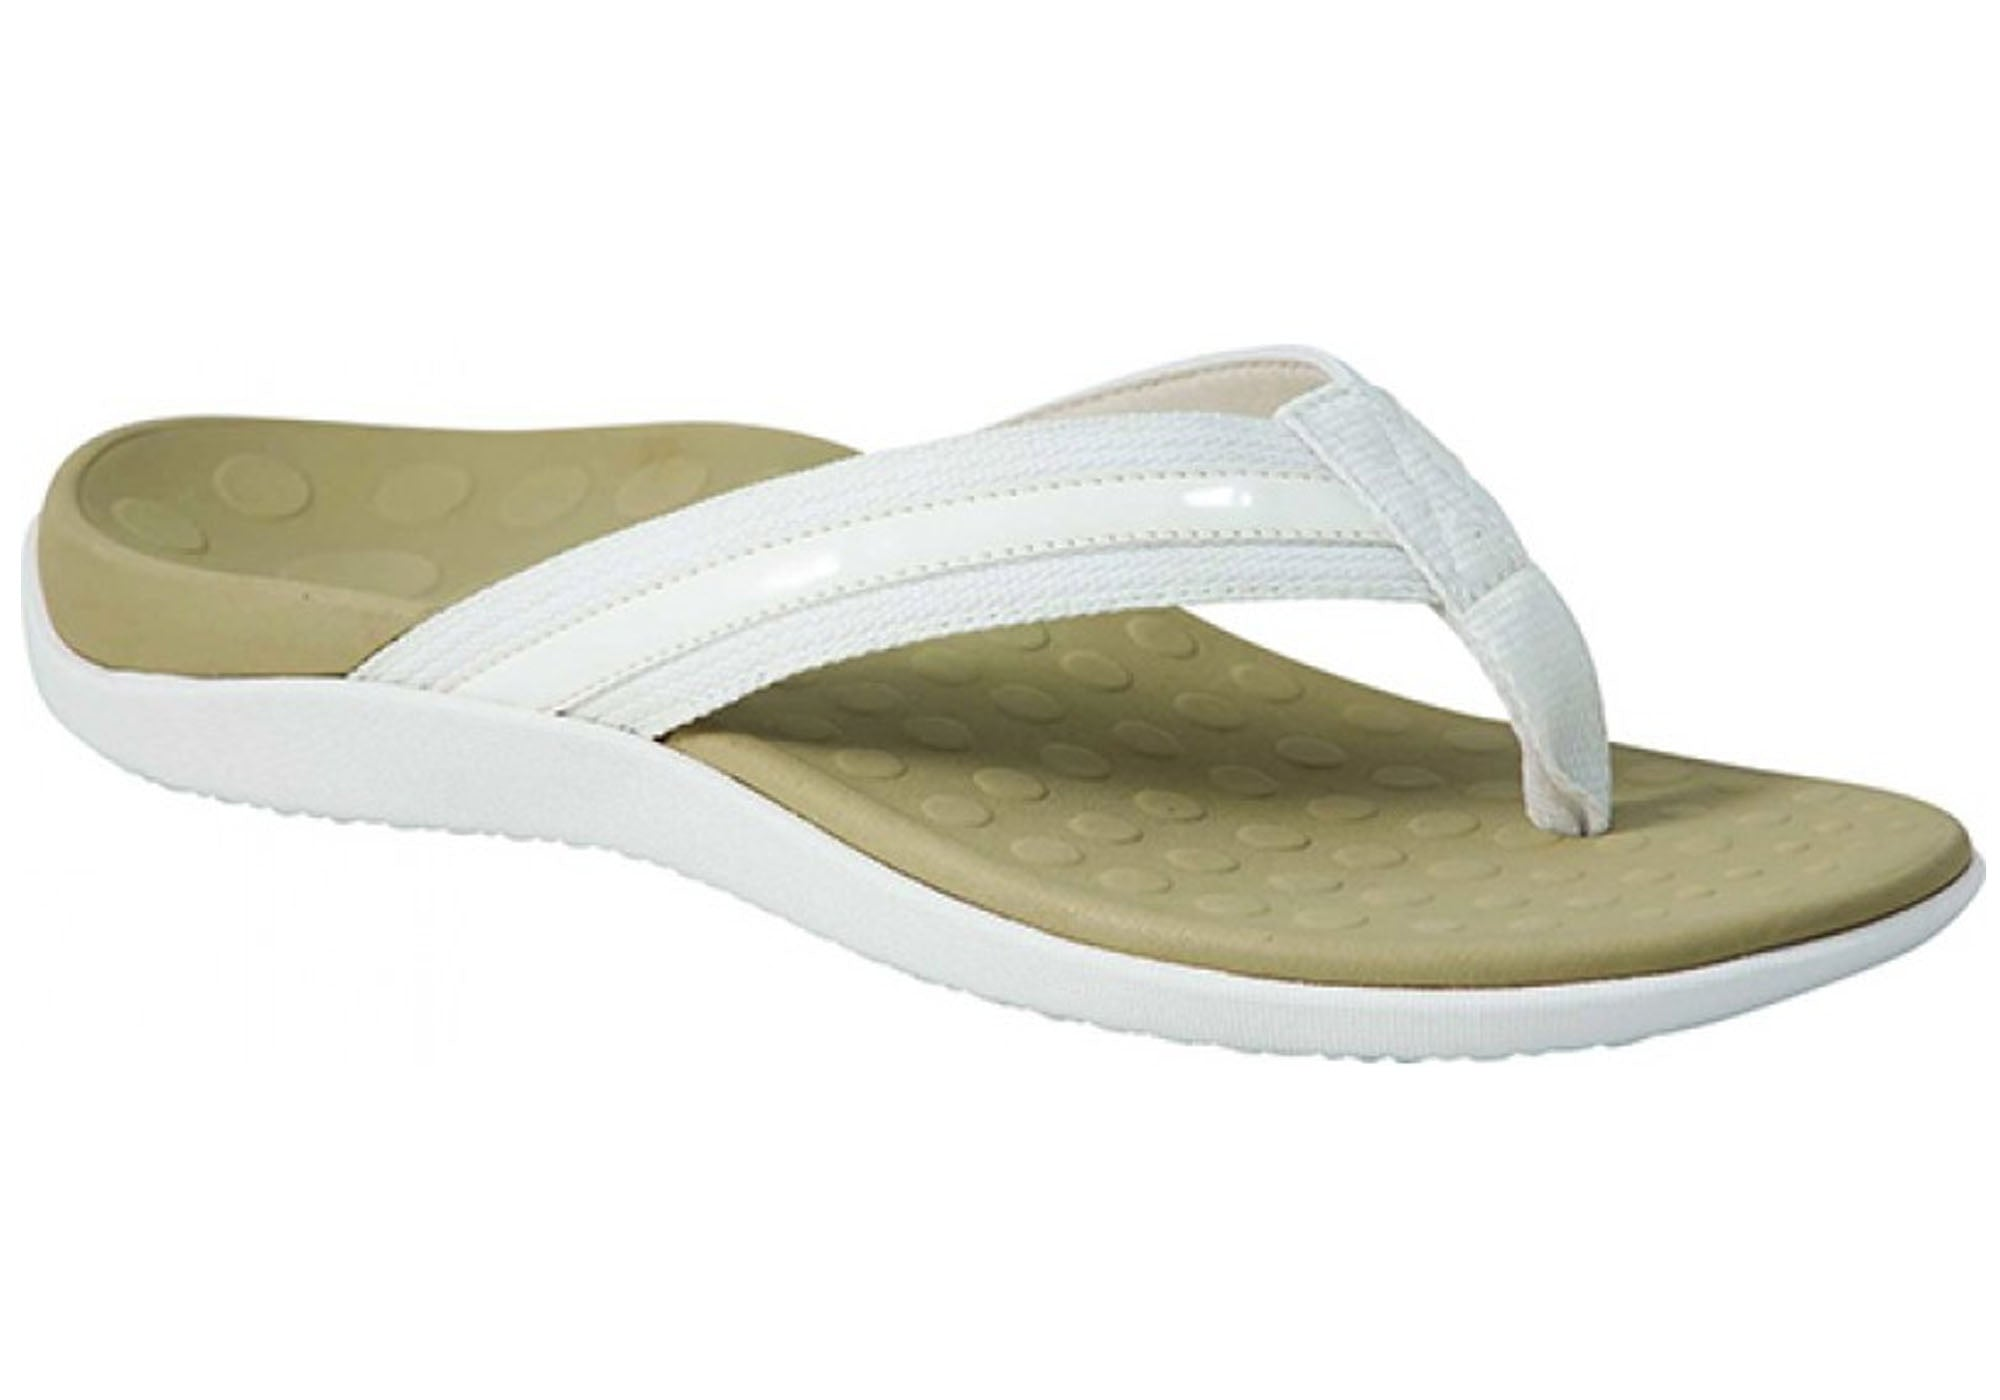 576162e0f0fd Home Scholl Orthaheel Tide II Womens Supportive Orthotic Thong Sandals.  Black · Natural White · White ...